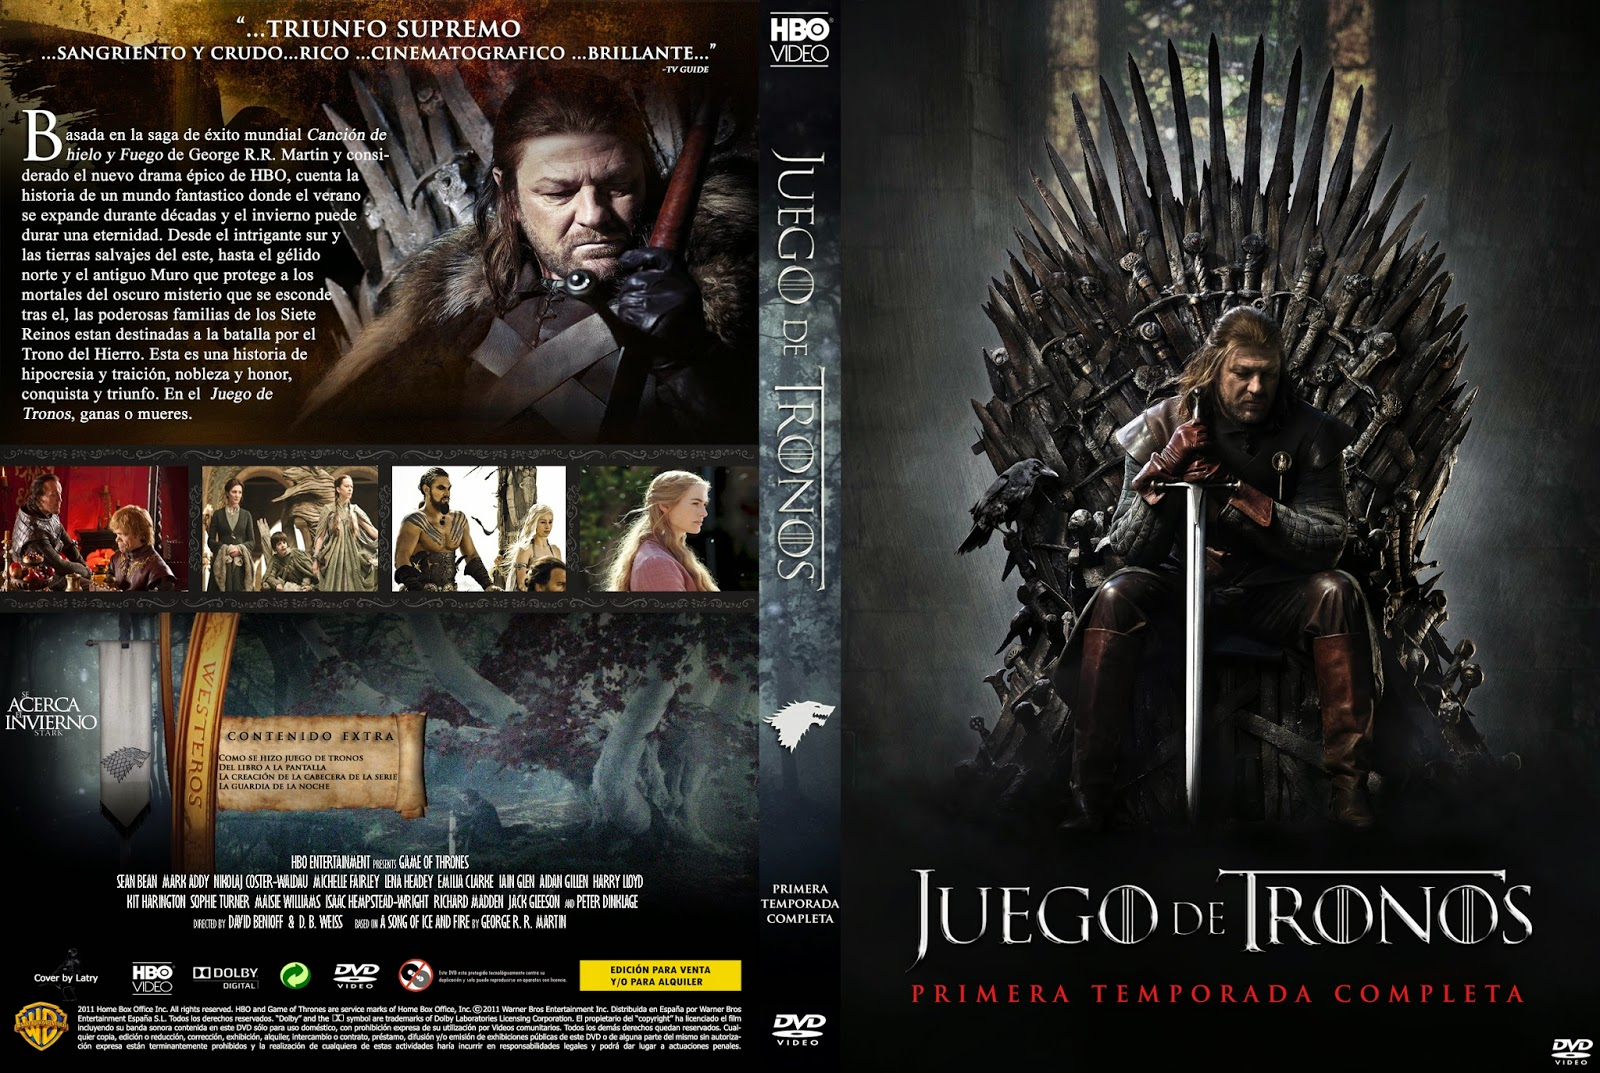 Libros Juego De Tronos Torrent Game Of Thrones Temporada 1 Español Latino Descargas